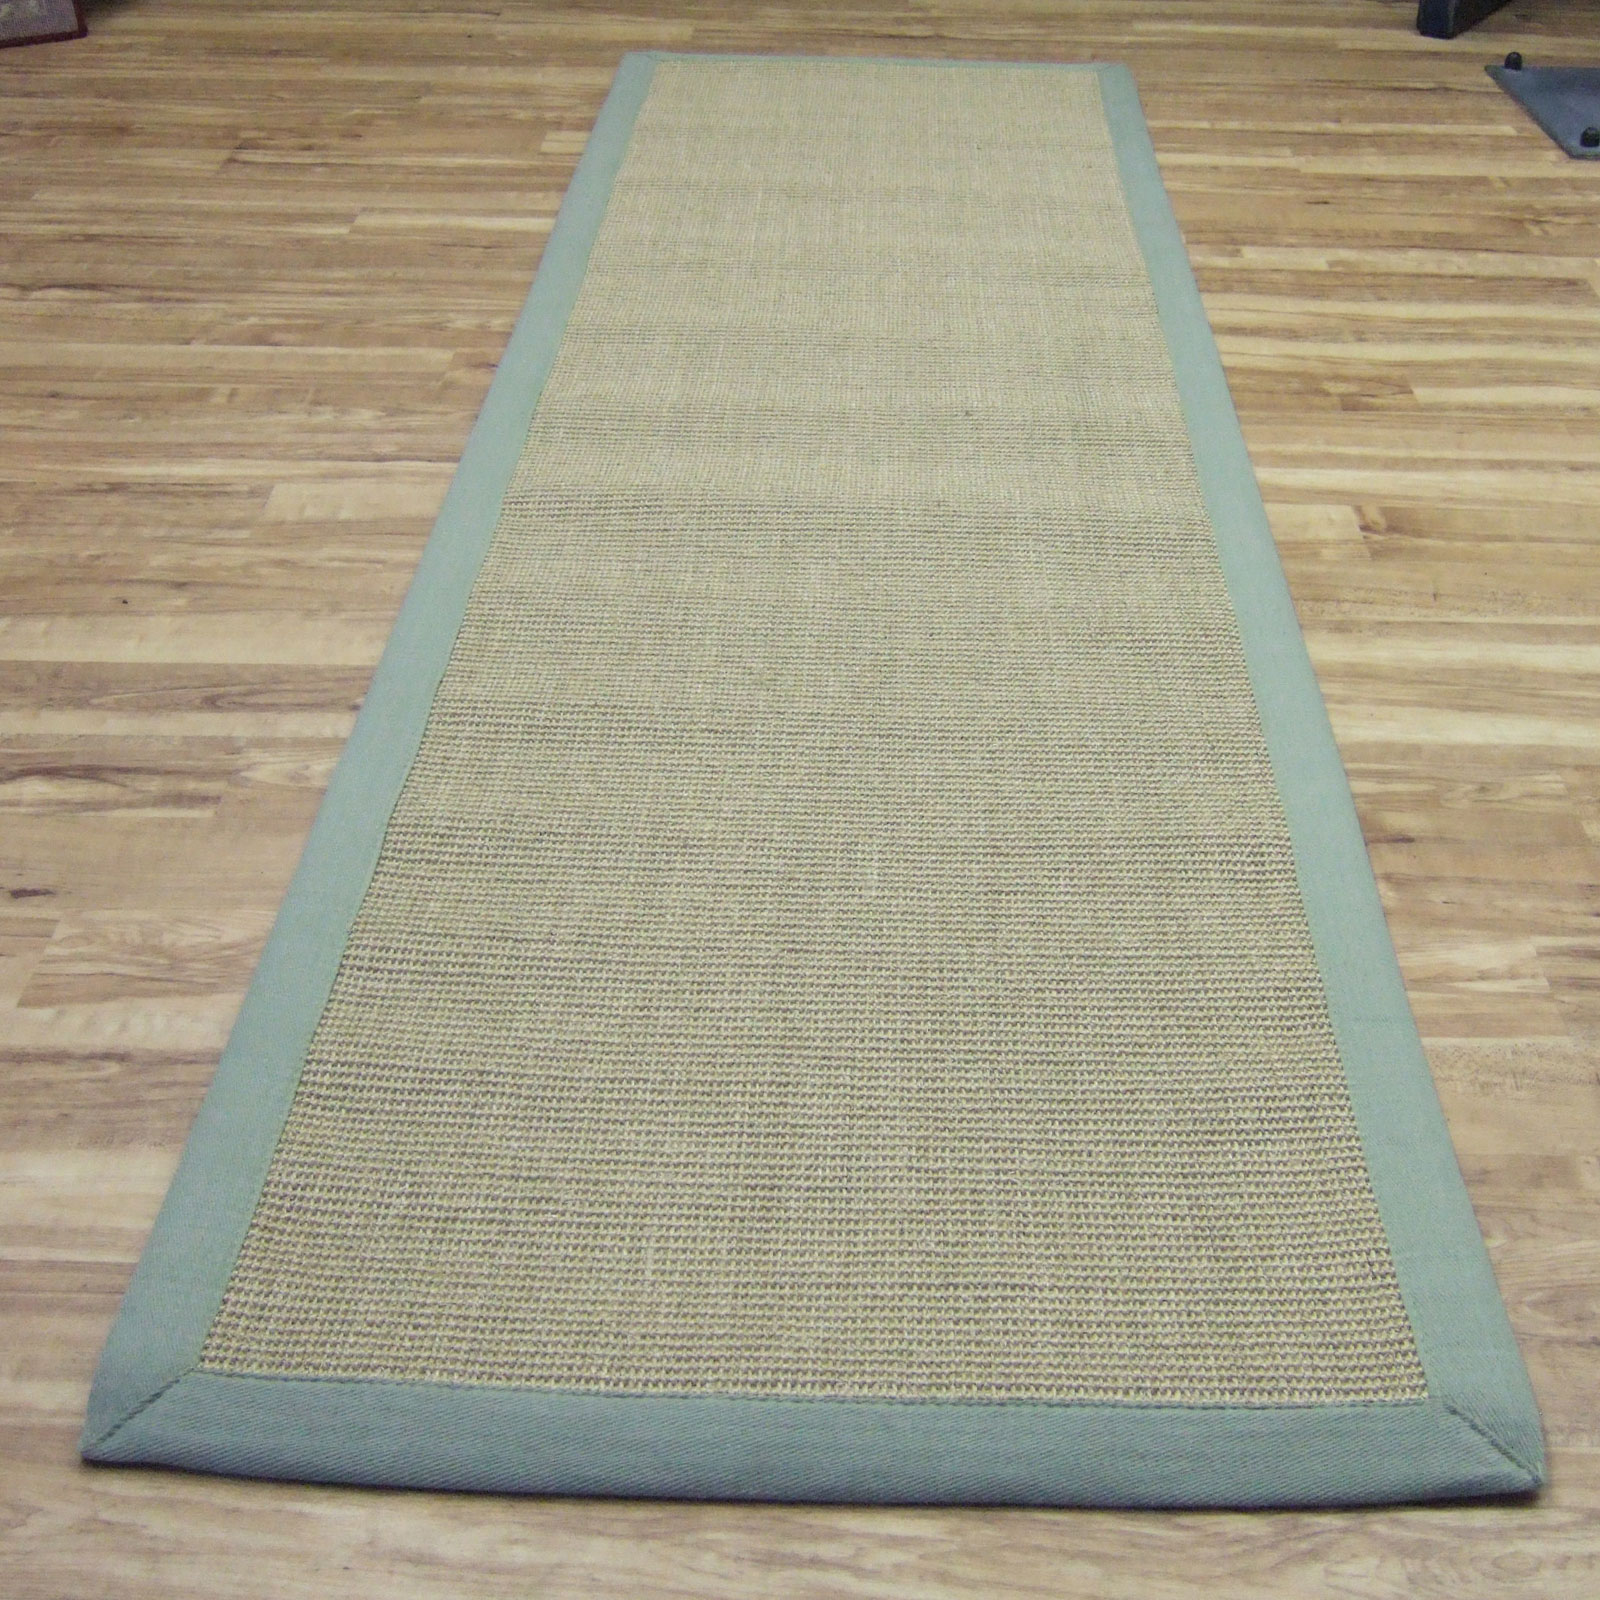 Runner Rugs Uk: Sisal Hallway Runners In Linen With A Sage Green Border